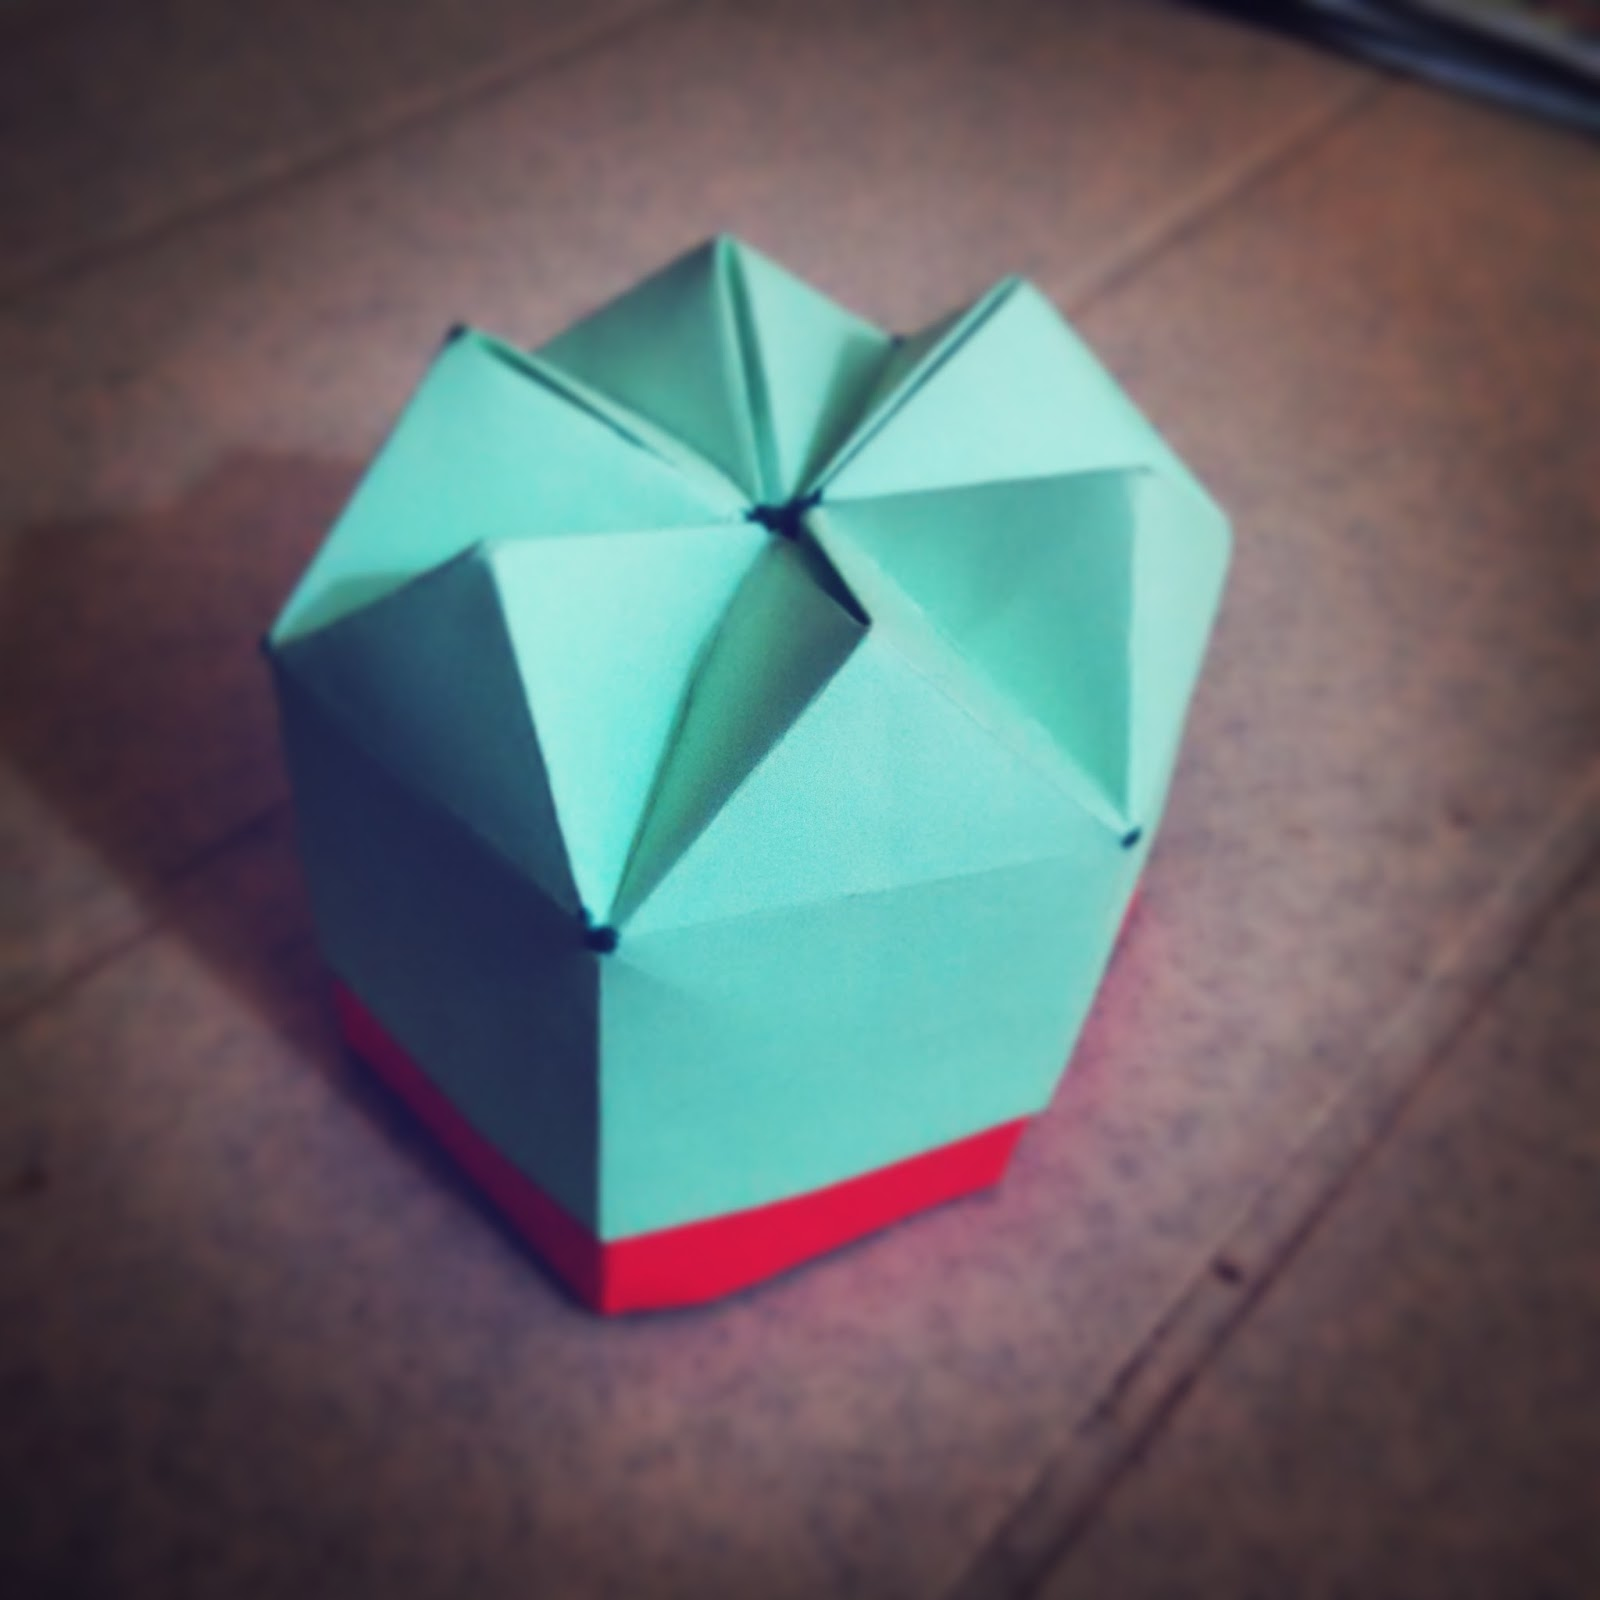 hexagon gift box tomoko fuse try watching this video on www youtube com or enable javascript if it [ 1600 x 1600 Pixel ]